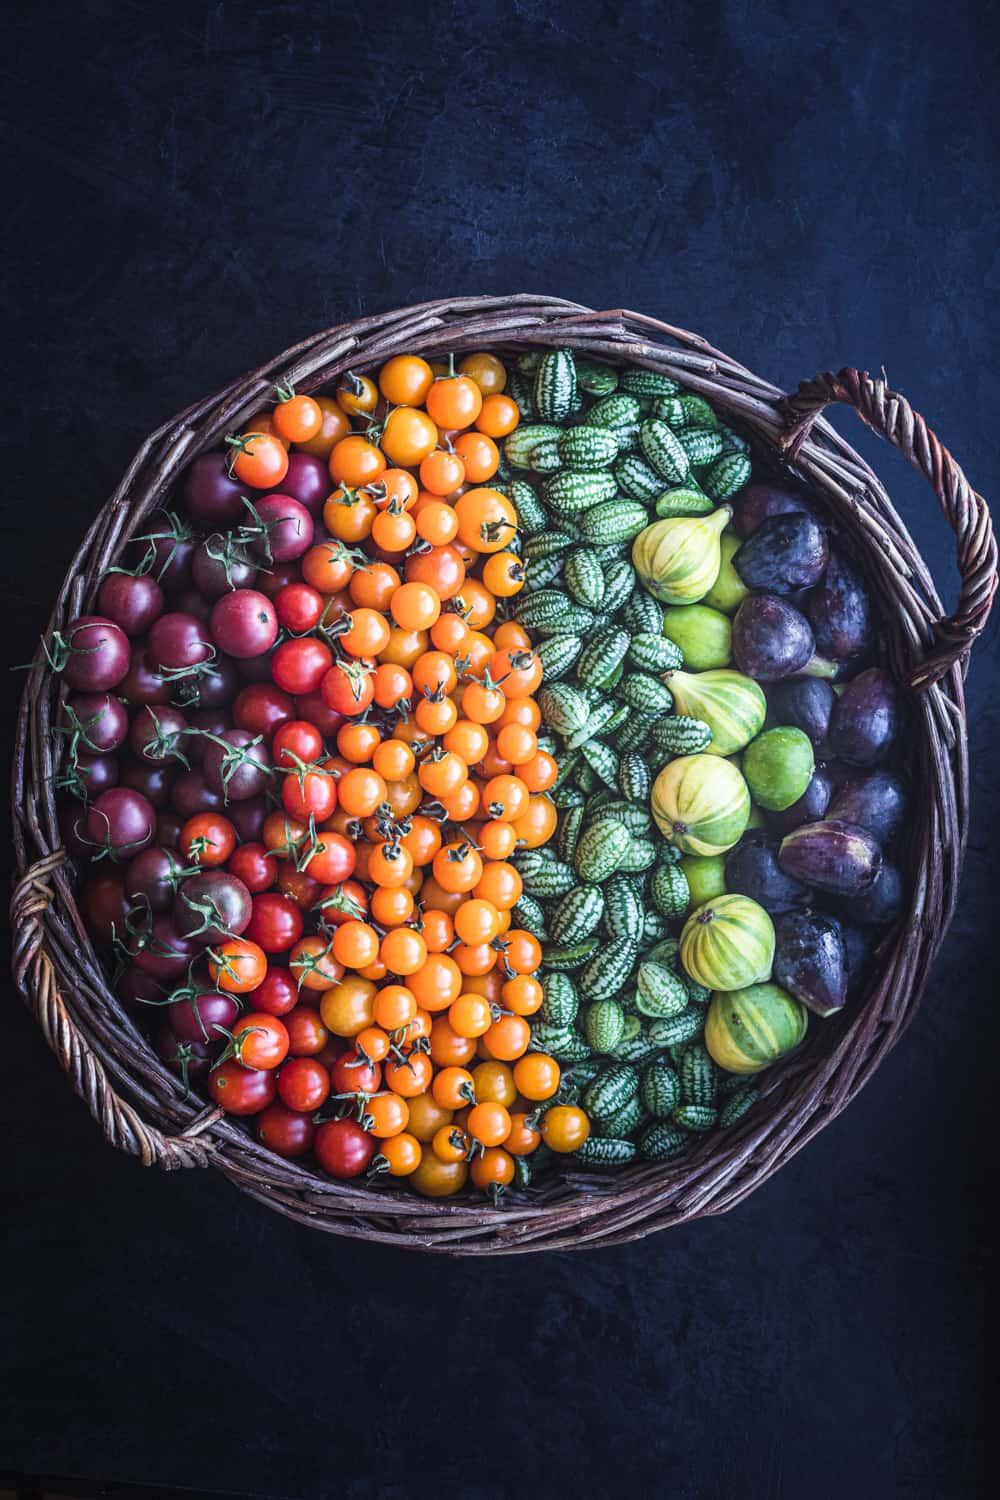 A tomato, cucuamelon and fig rainbow! The tomatoes are on the red-orange-yellow spectrum and the figs and cucamelons are green and purple.